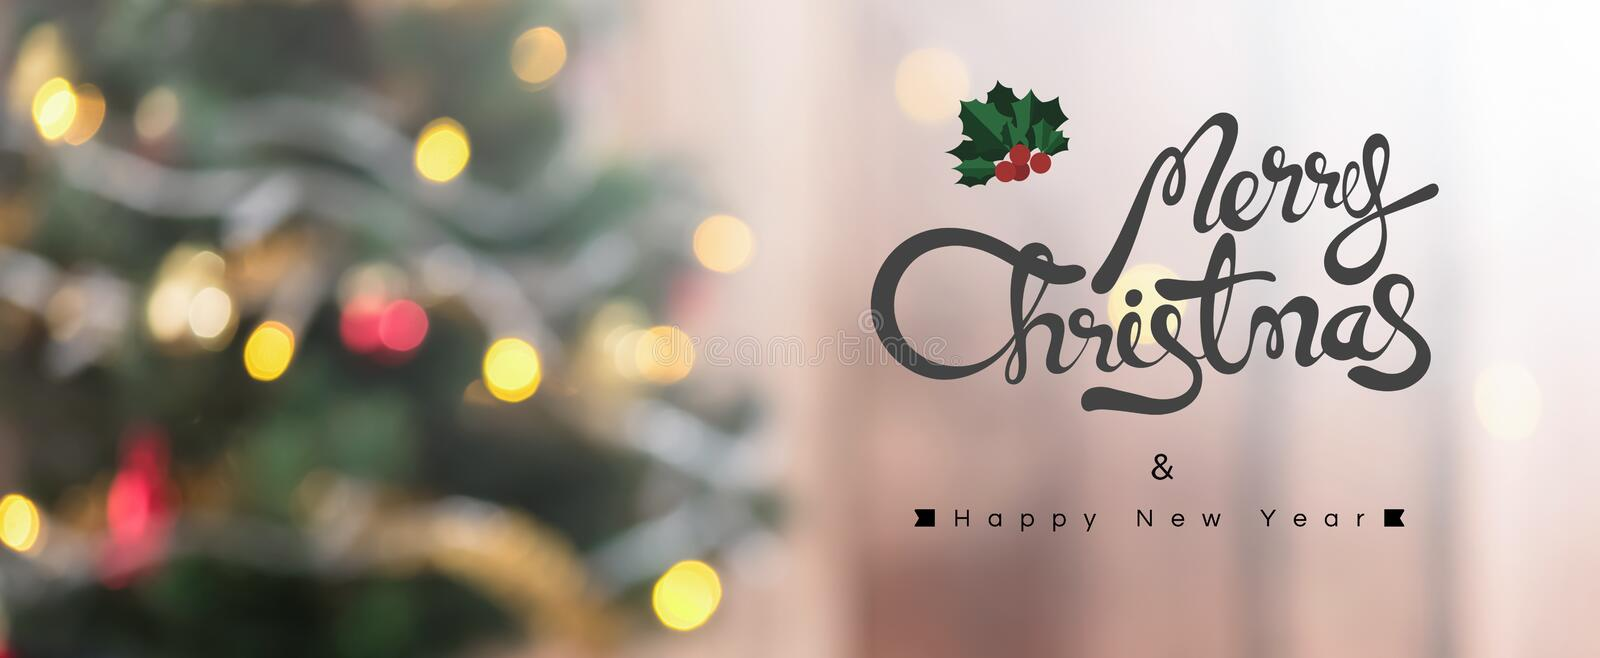 Merry Christmas ans Happy New Year text on colorful bokeh background. From decorated Christmas tree, panoramic banner stock photo